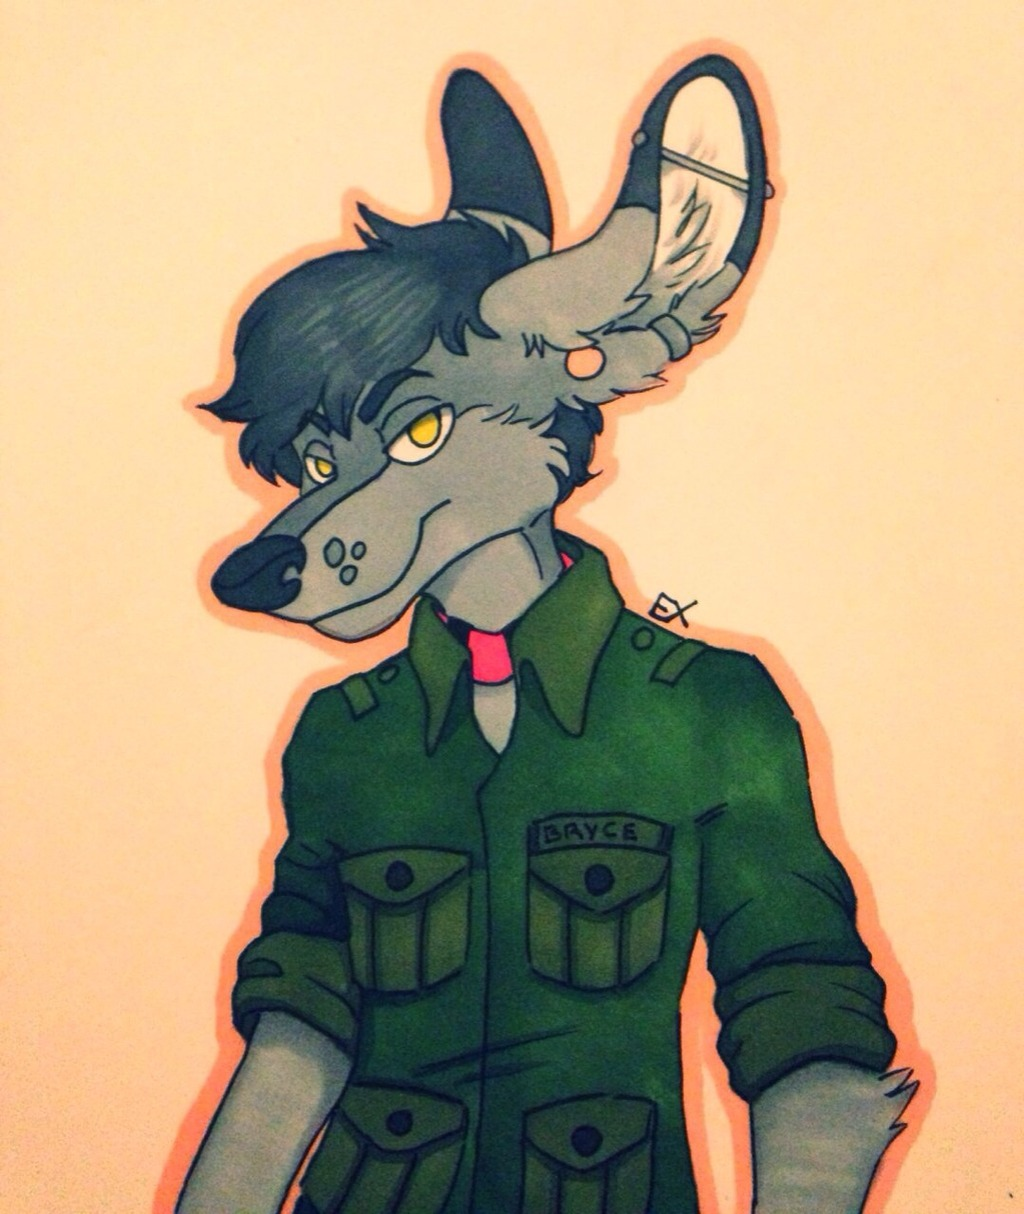 What Do They Say About Roos in Uniform?